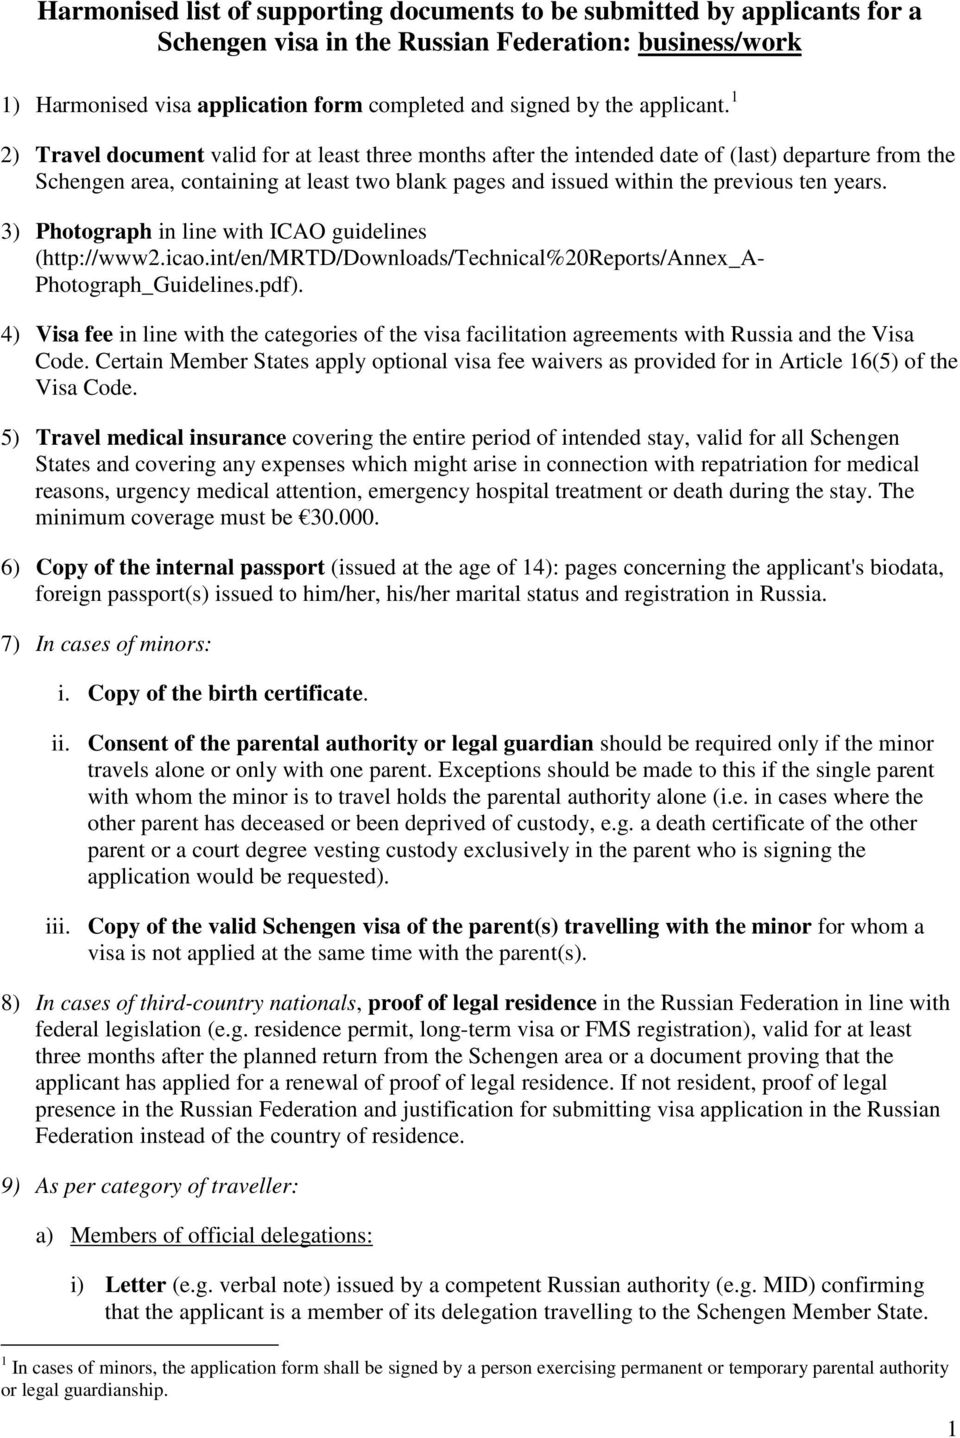 Harmonised List Of Supporting Documents To Be Submitted By Applicants For A Schengen Visa In The Russian Federation Business Work Pdf Free Download